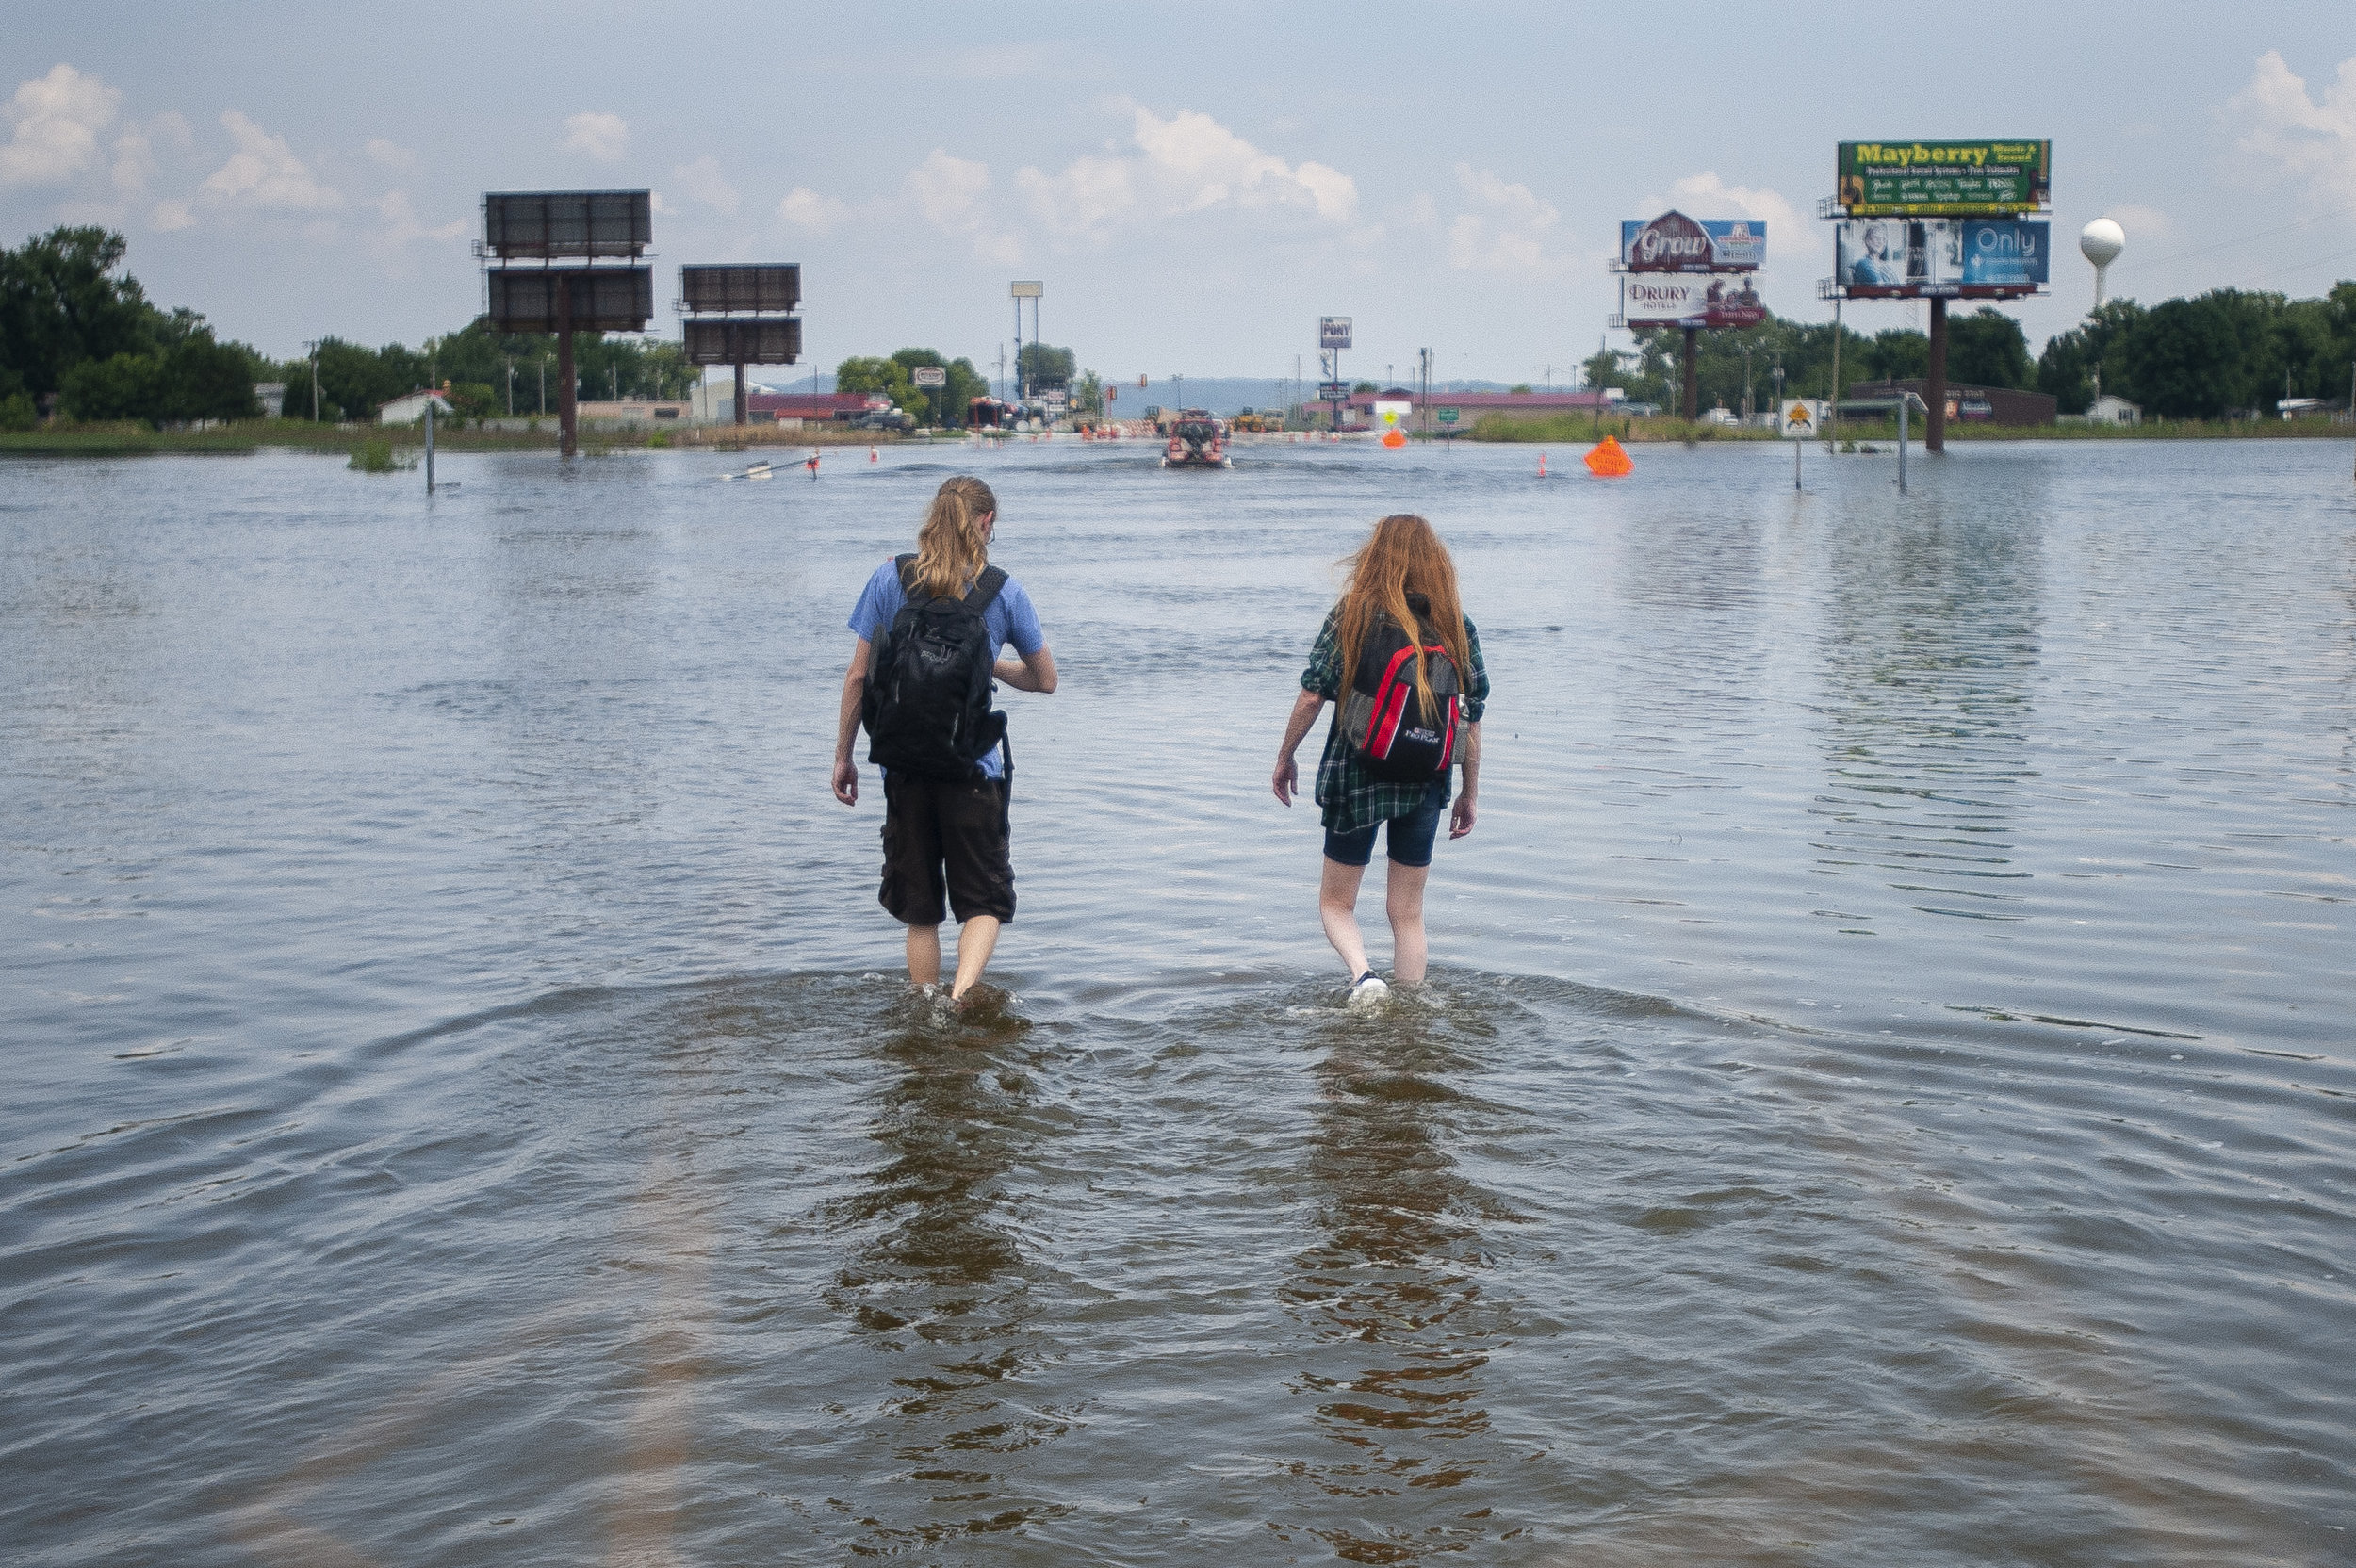 "Cindy Laymon, right, and her son Jesse Laymon-Sheffer, both of East Cape Girardeau, Illinois, walk back to the community from their parked vehicle Tuesday, July 9, 2019, through a flooded portion of Illinois Route 146 between the Bill Emerson Memorial Bridge and the edge of East Cape Girardeau. The mother and son have been parking a vehicle at the edge of floodwaters to travel to work in Cape Girardeau. ""We have come to work every day so it's at least two trips [through the water],"" Cindy said of their routine for most days. Jacob Wiegand 